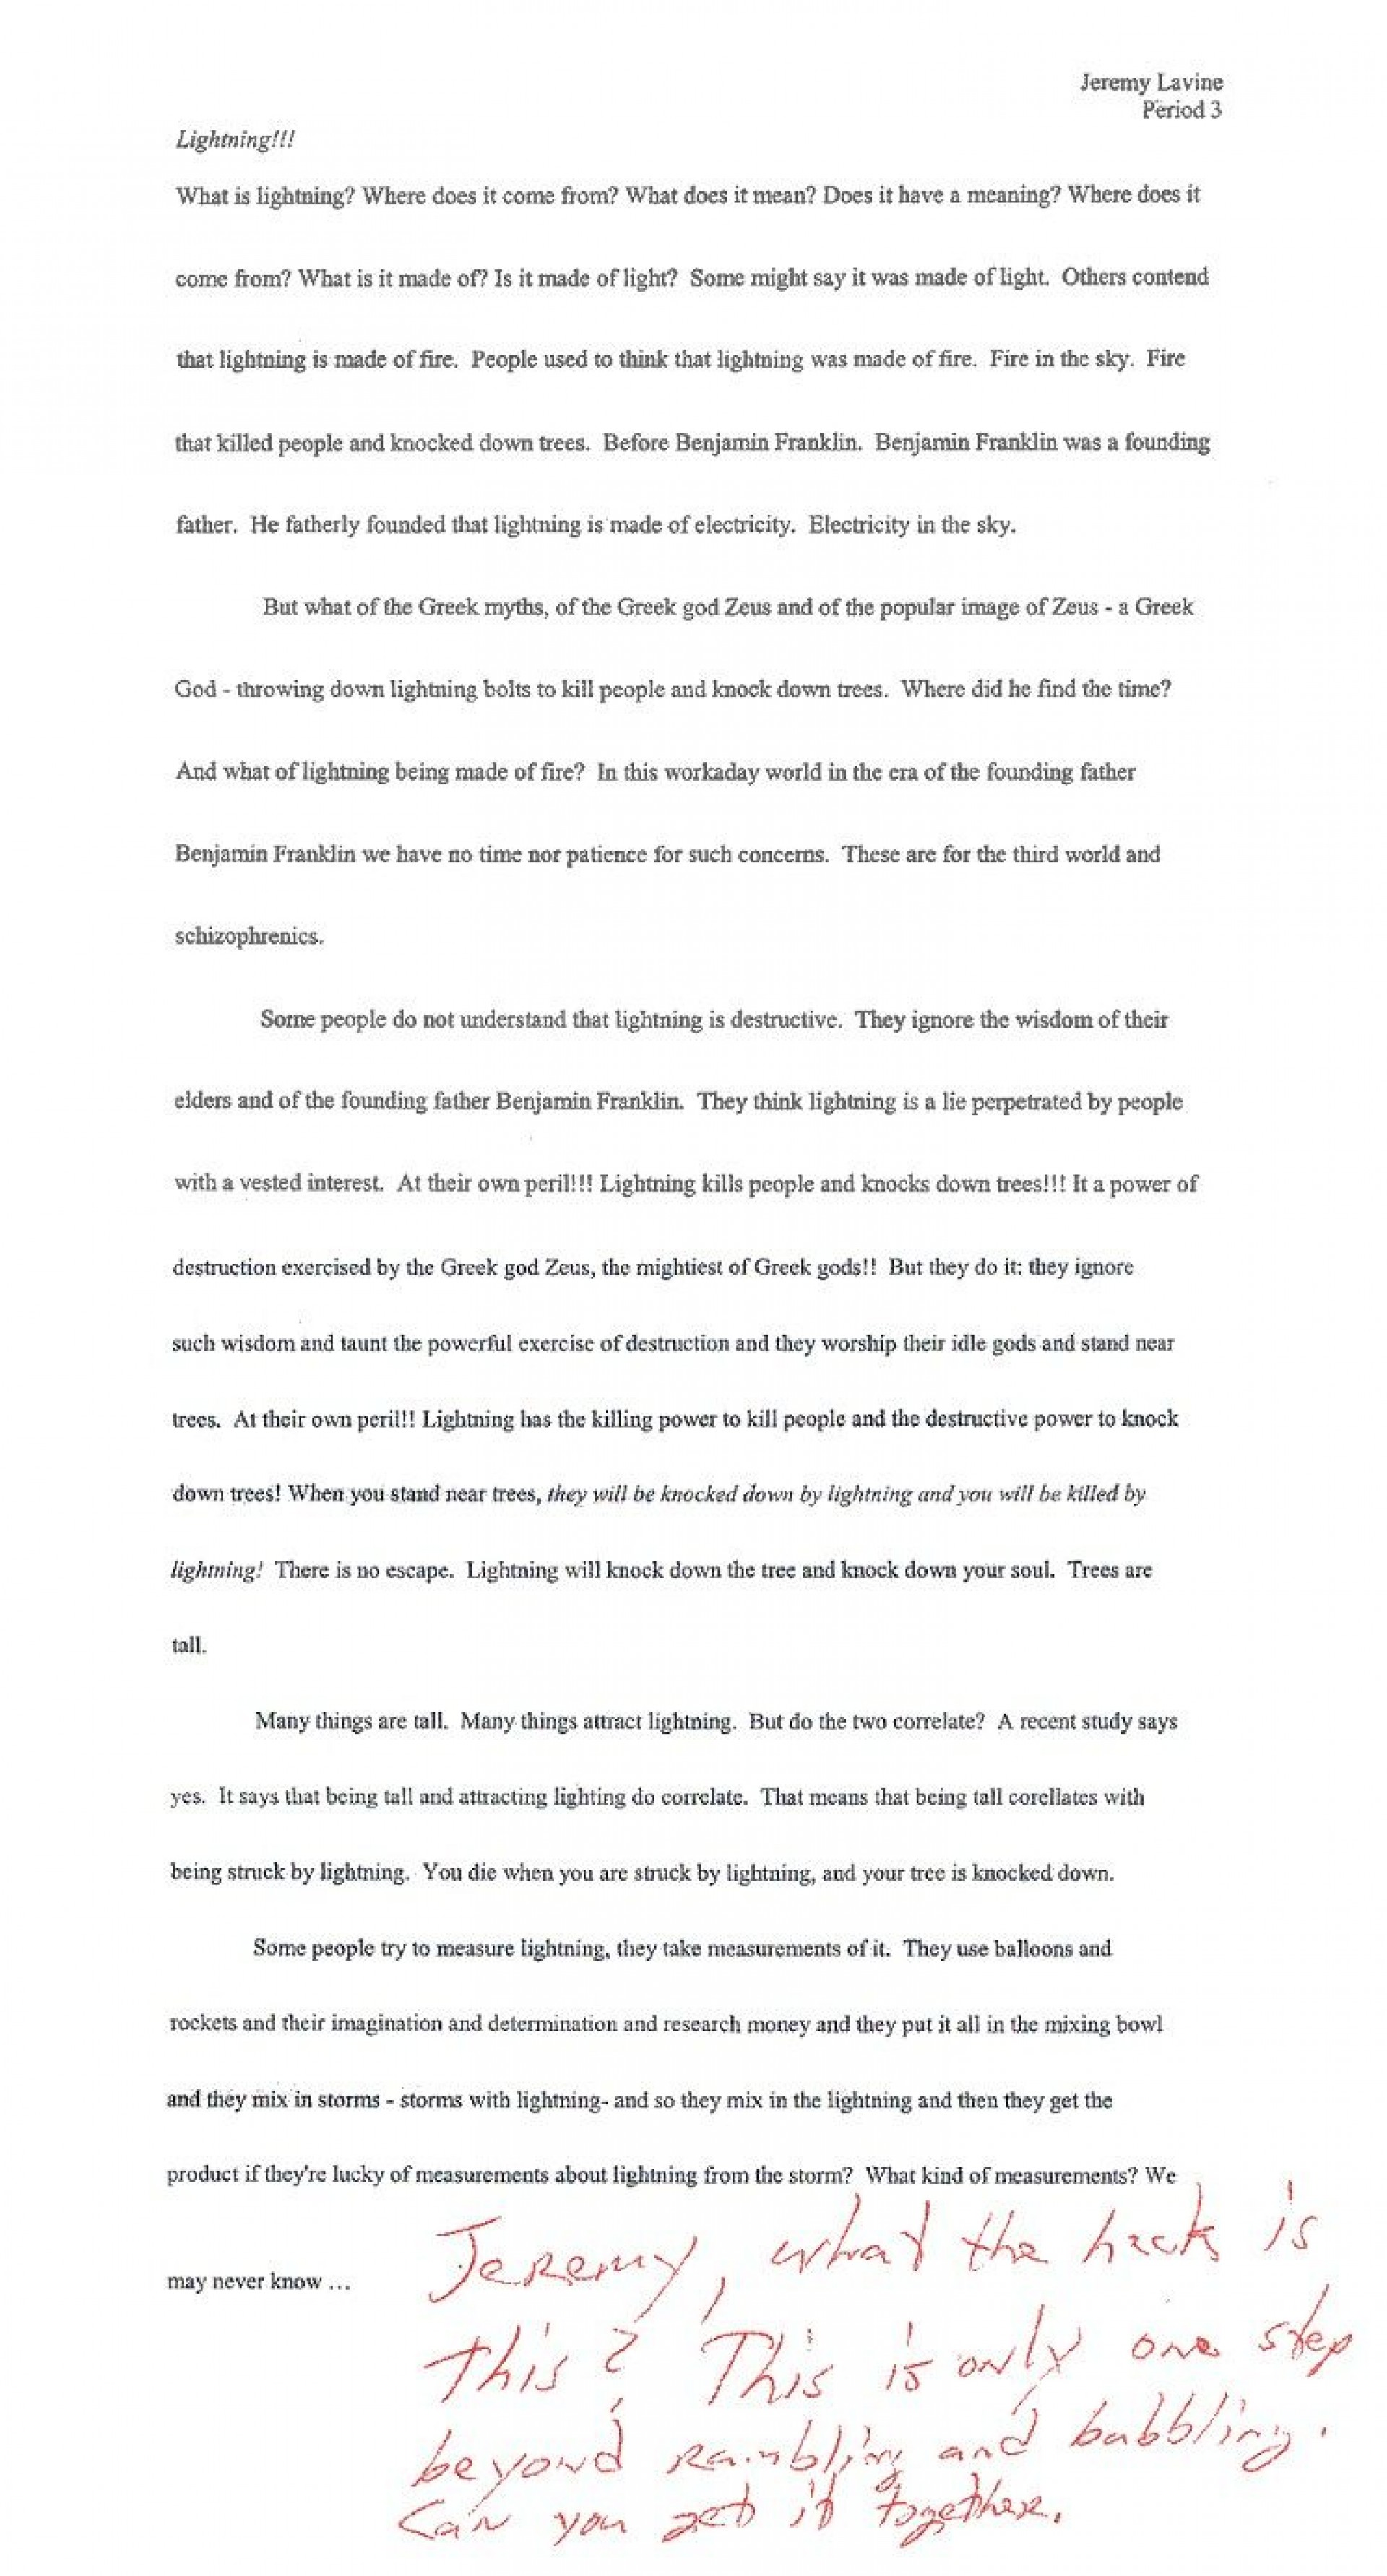 002 Essay  Lightning Funny Essays Stupendous Topics Written By Students For College1920